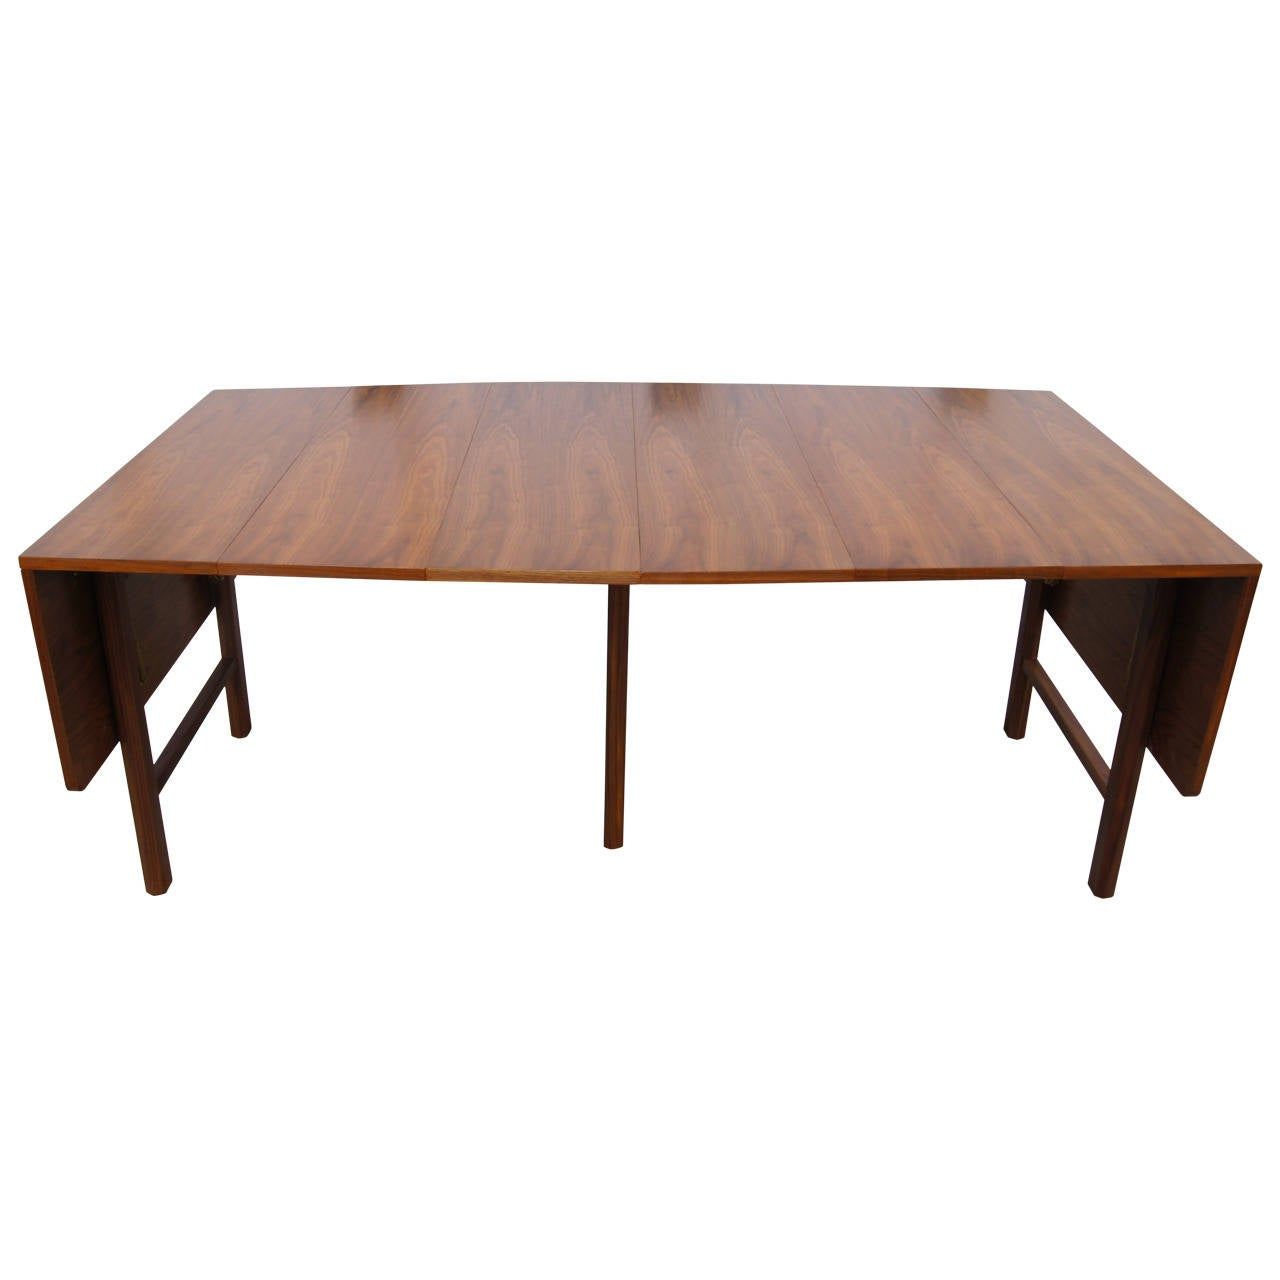 Drop Leaf Extension Dining Table By Edward Wormley For Dunbar At 1stdibs